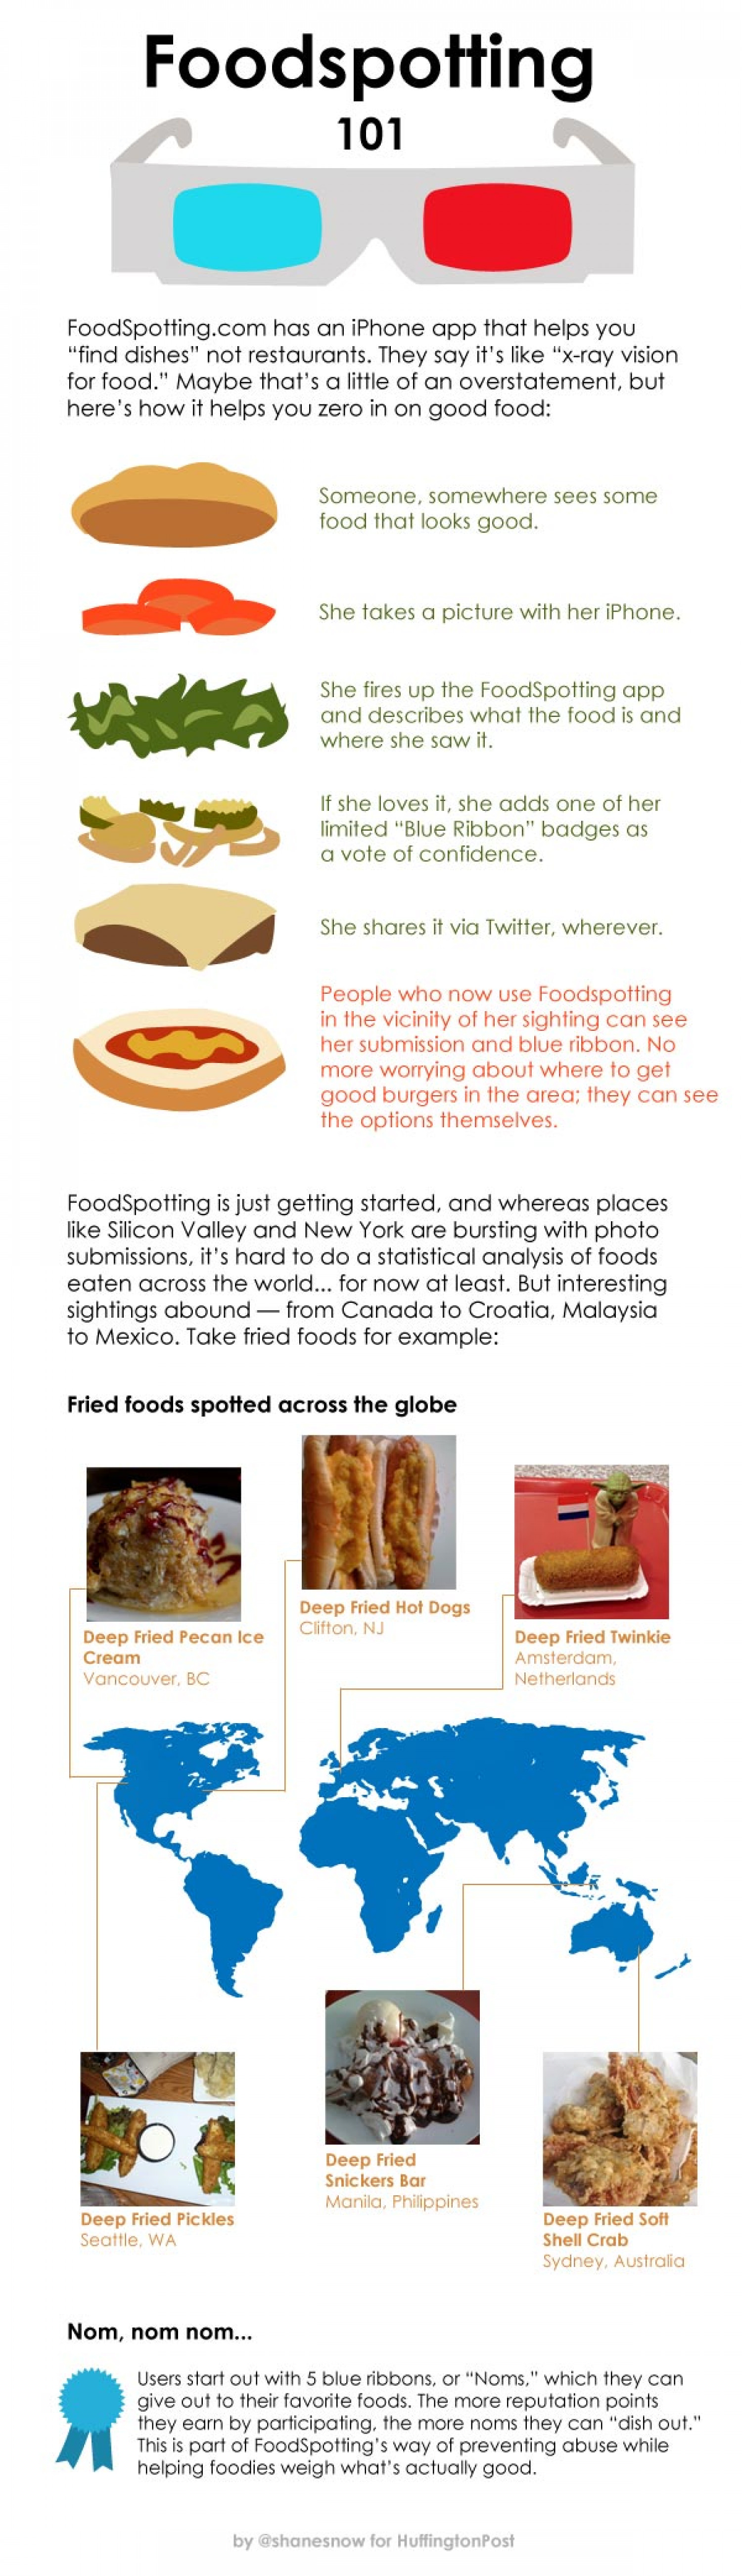 Foodspotting 101 Infographic